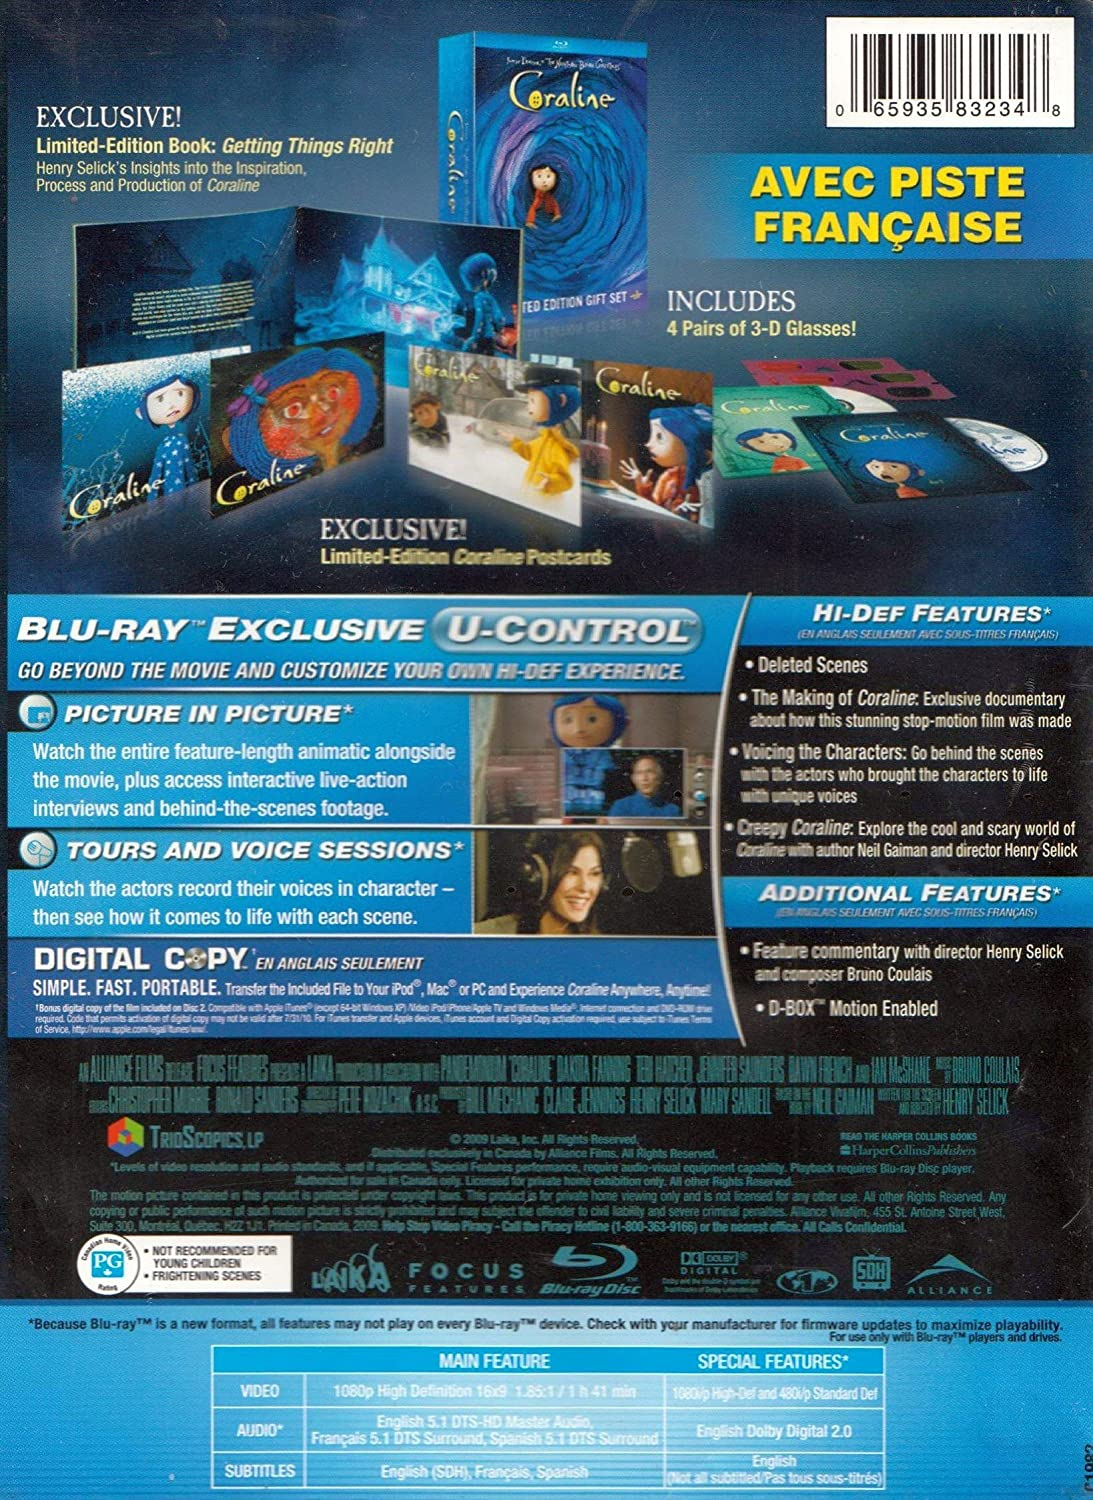 Amazon Com Coraline Limited Edition Gift Set Blu Ray Dakota Fanning Teri Hatcher Jennifer Saunders Dawn French Keith David Henry Selick Claire Jennings Bill Mechanic Mary Sandell Henry Selick Movies Tv